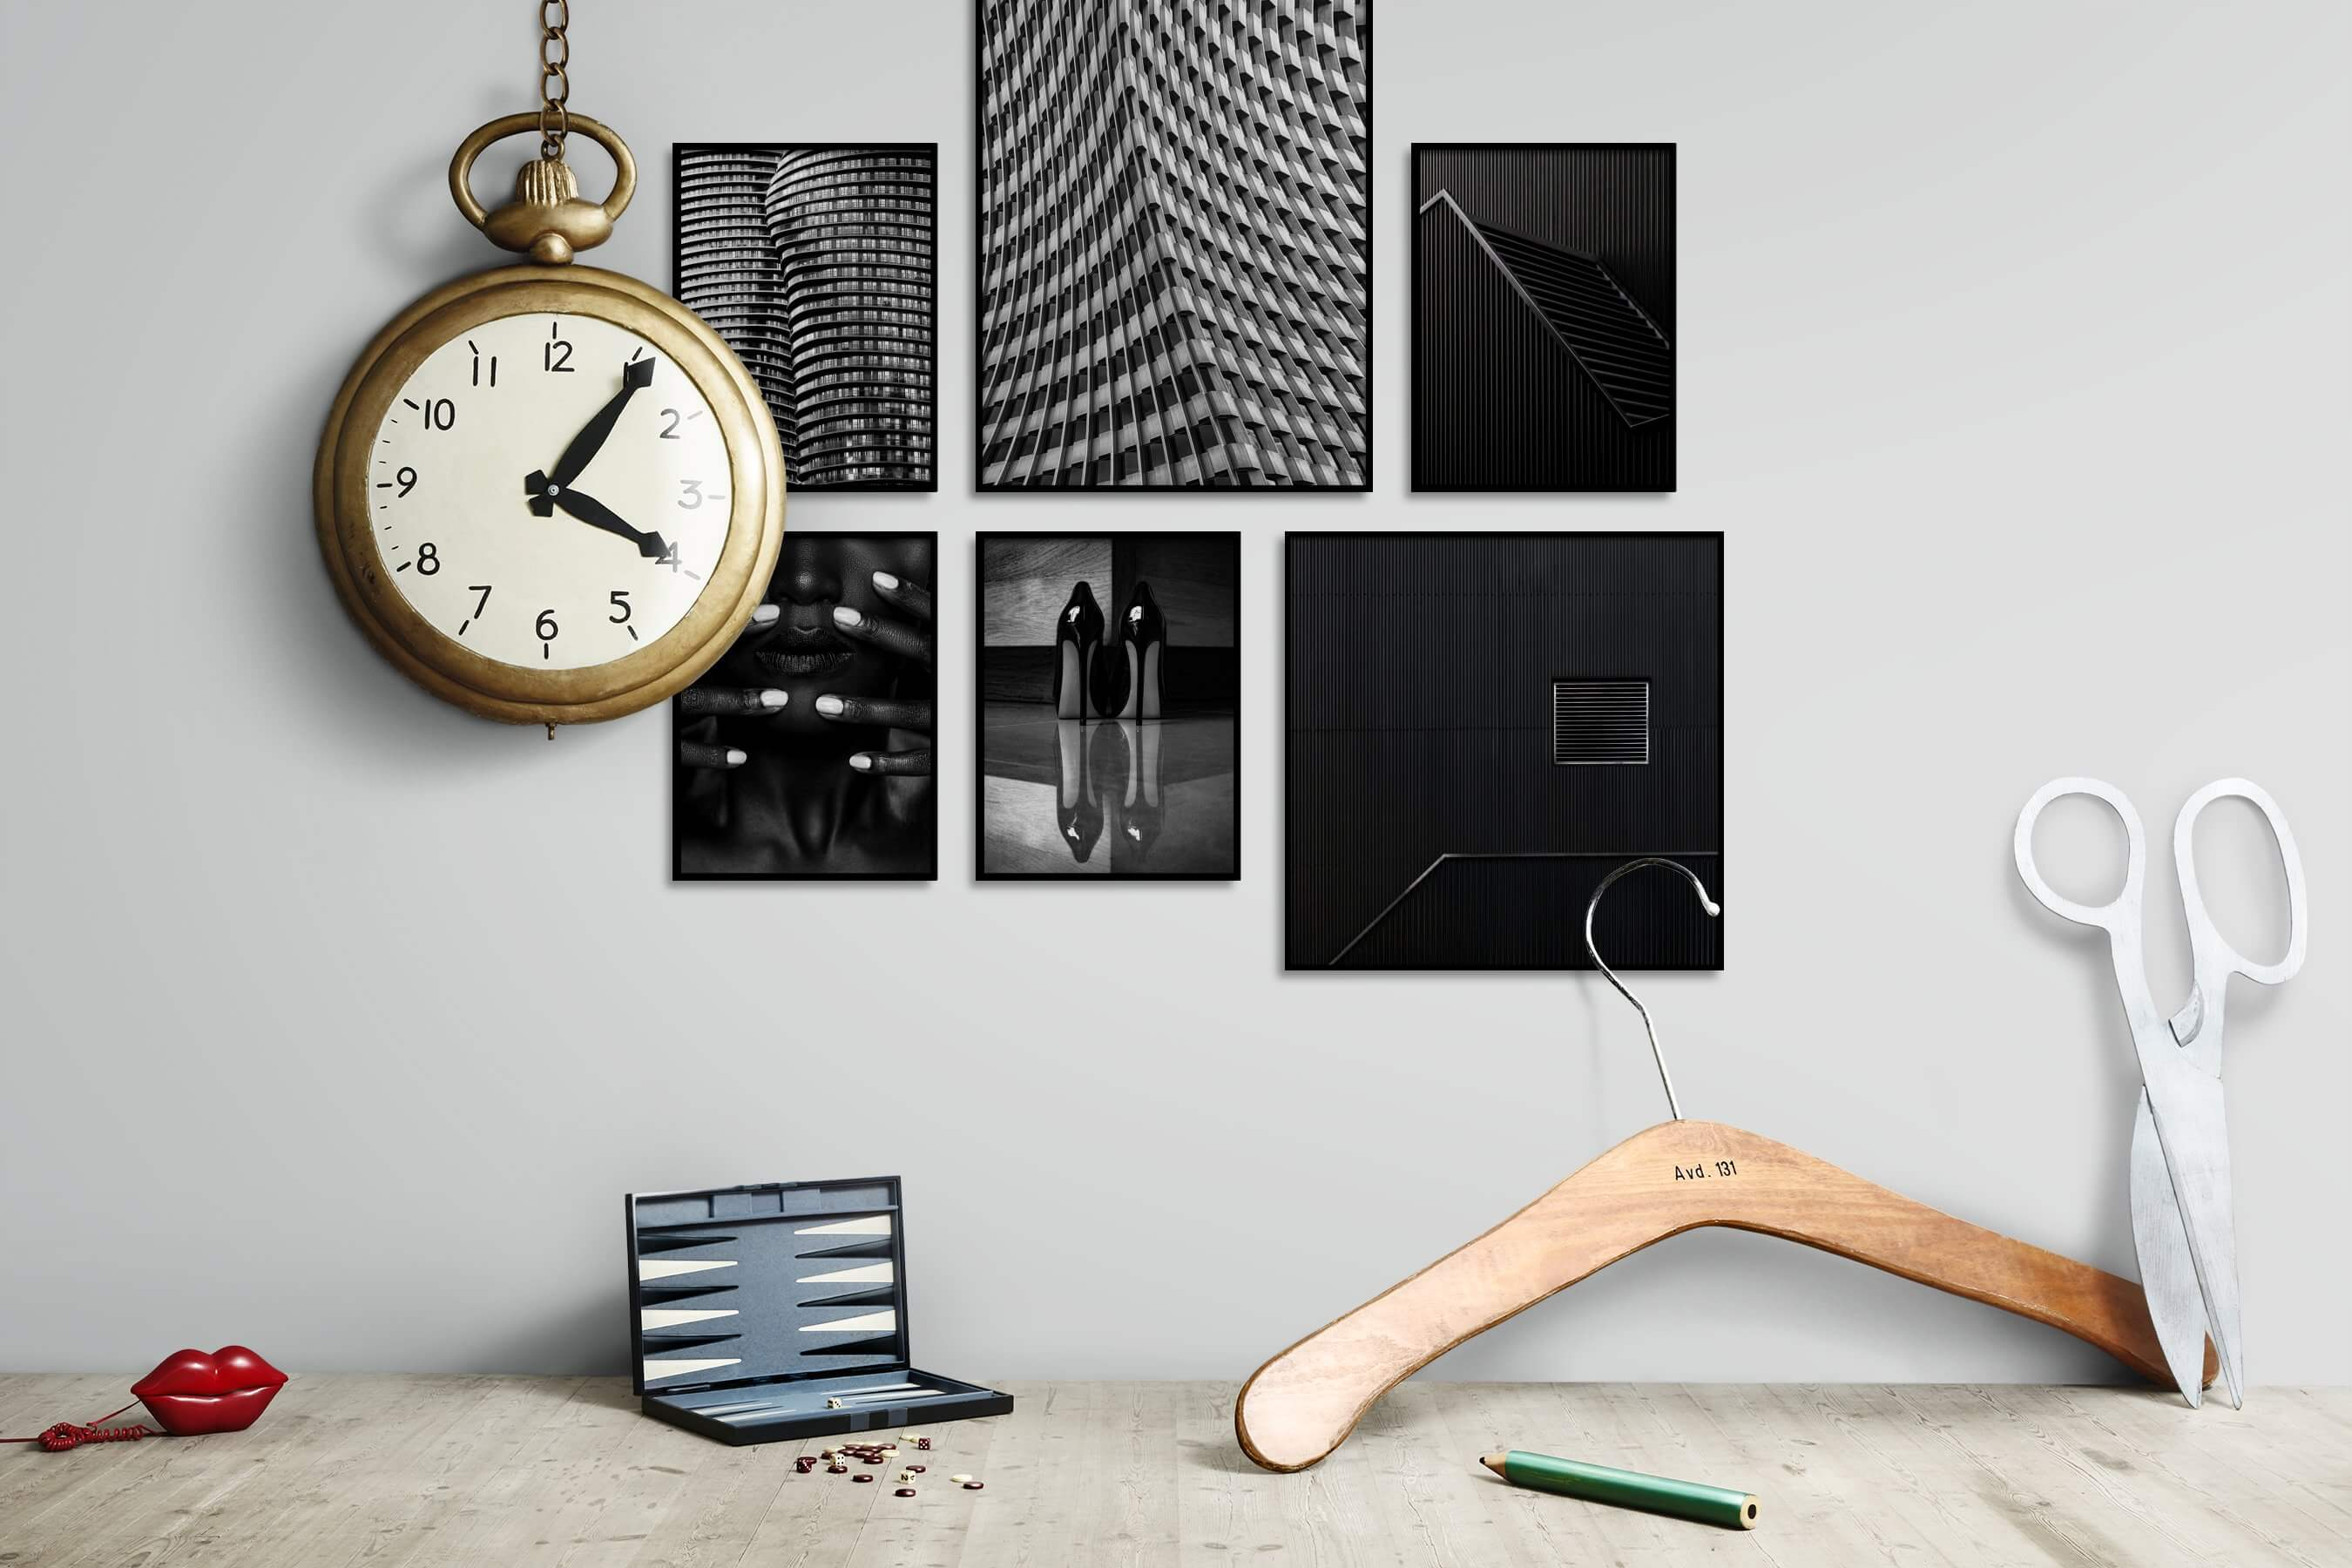 Gallery wall idea with six framed pictures arranged on a wall depicting For the Maximalist, City Life, Black & White, For the Moderate, Fashion & Beauty, Dark Tones, and For the Minimalist